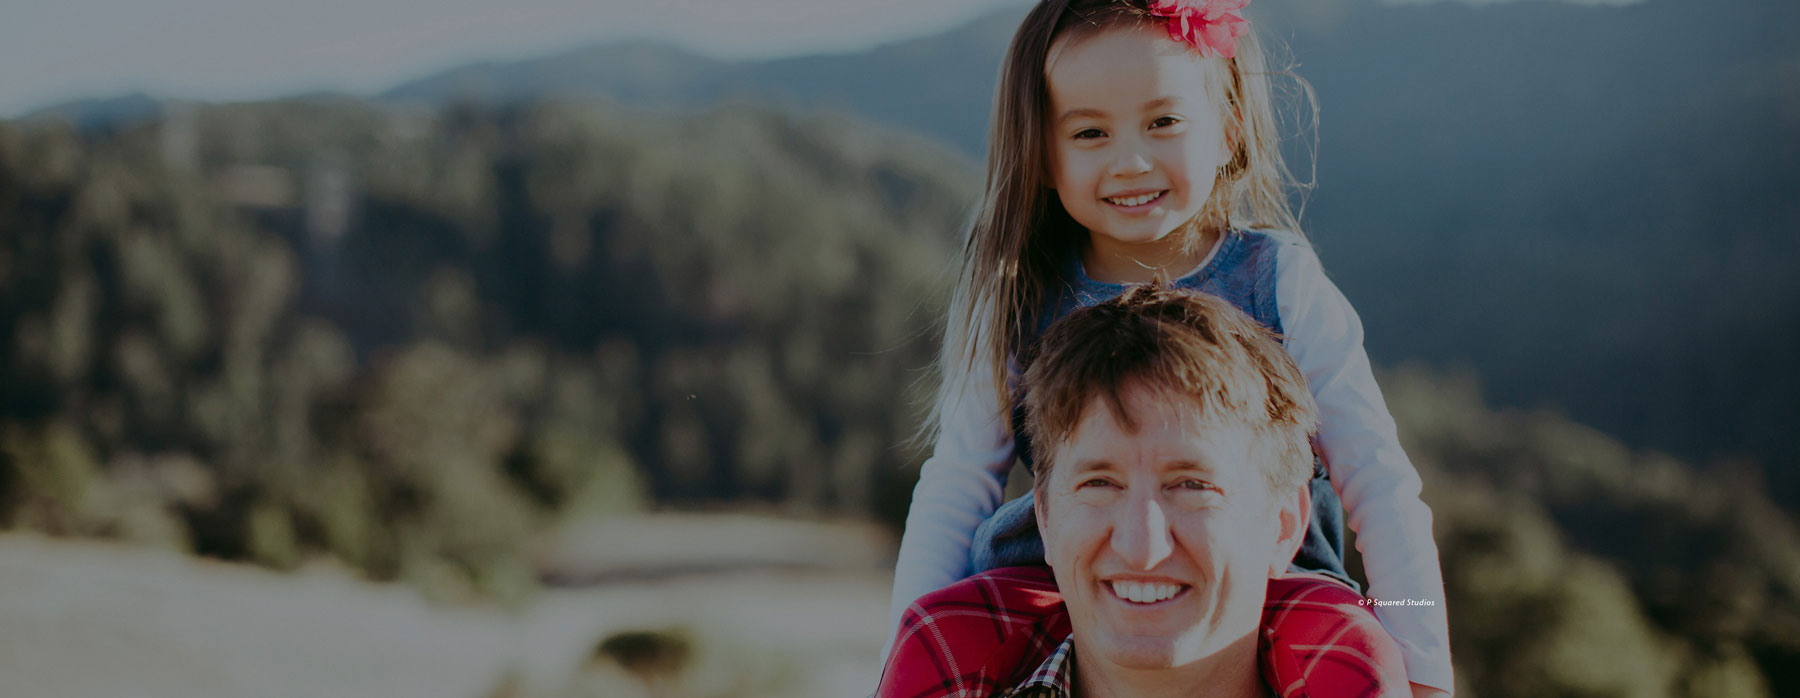 Los Gatos Family Dentistry Father and Daughter